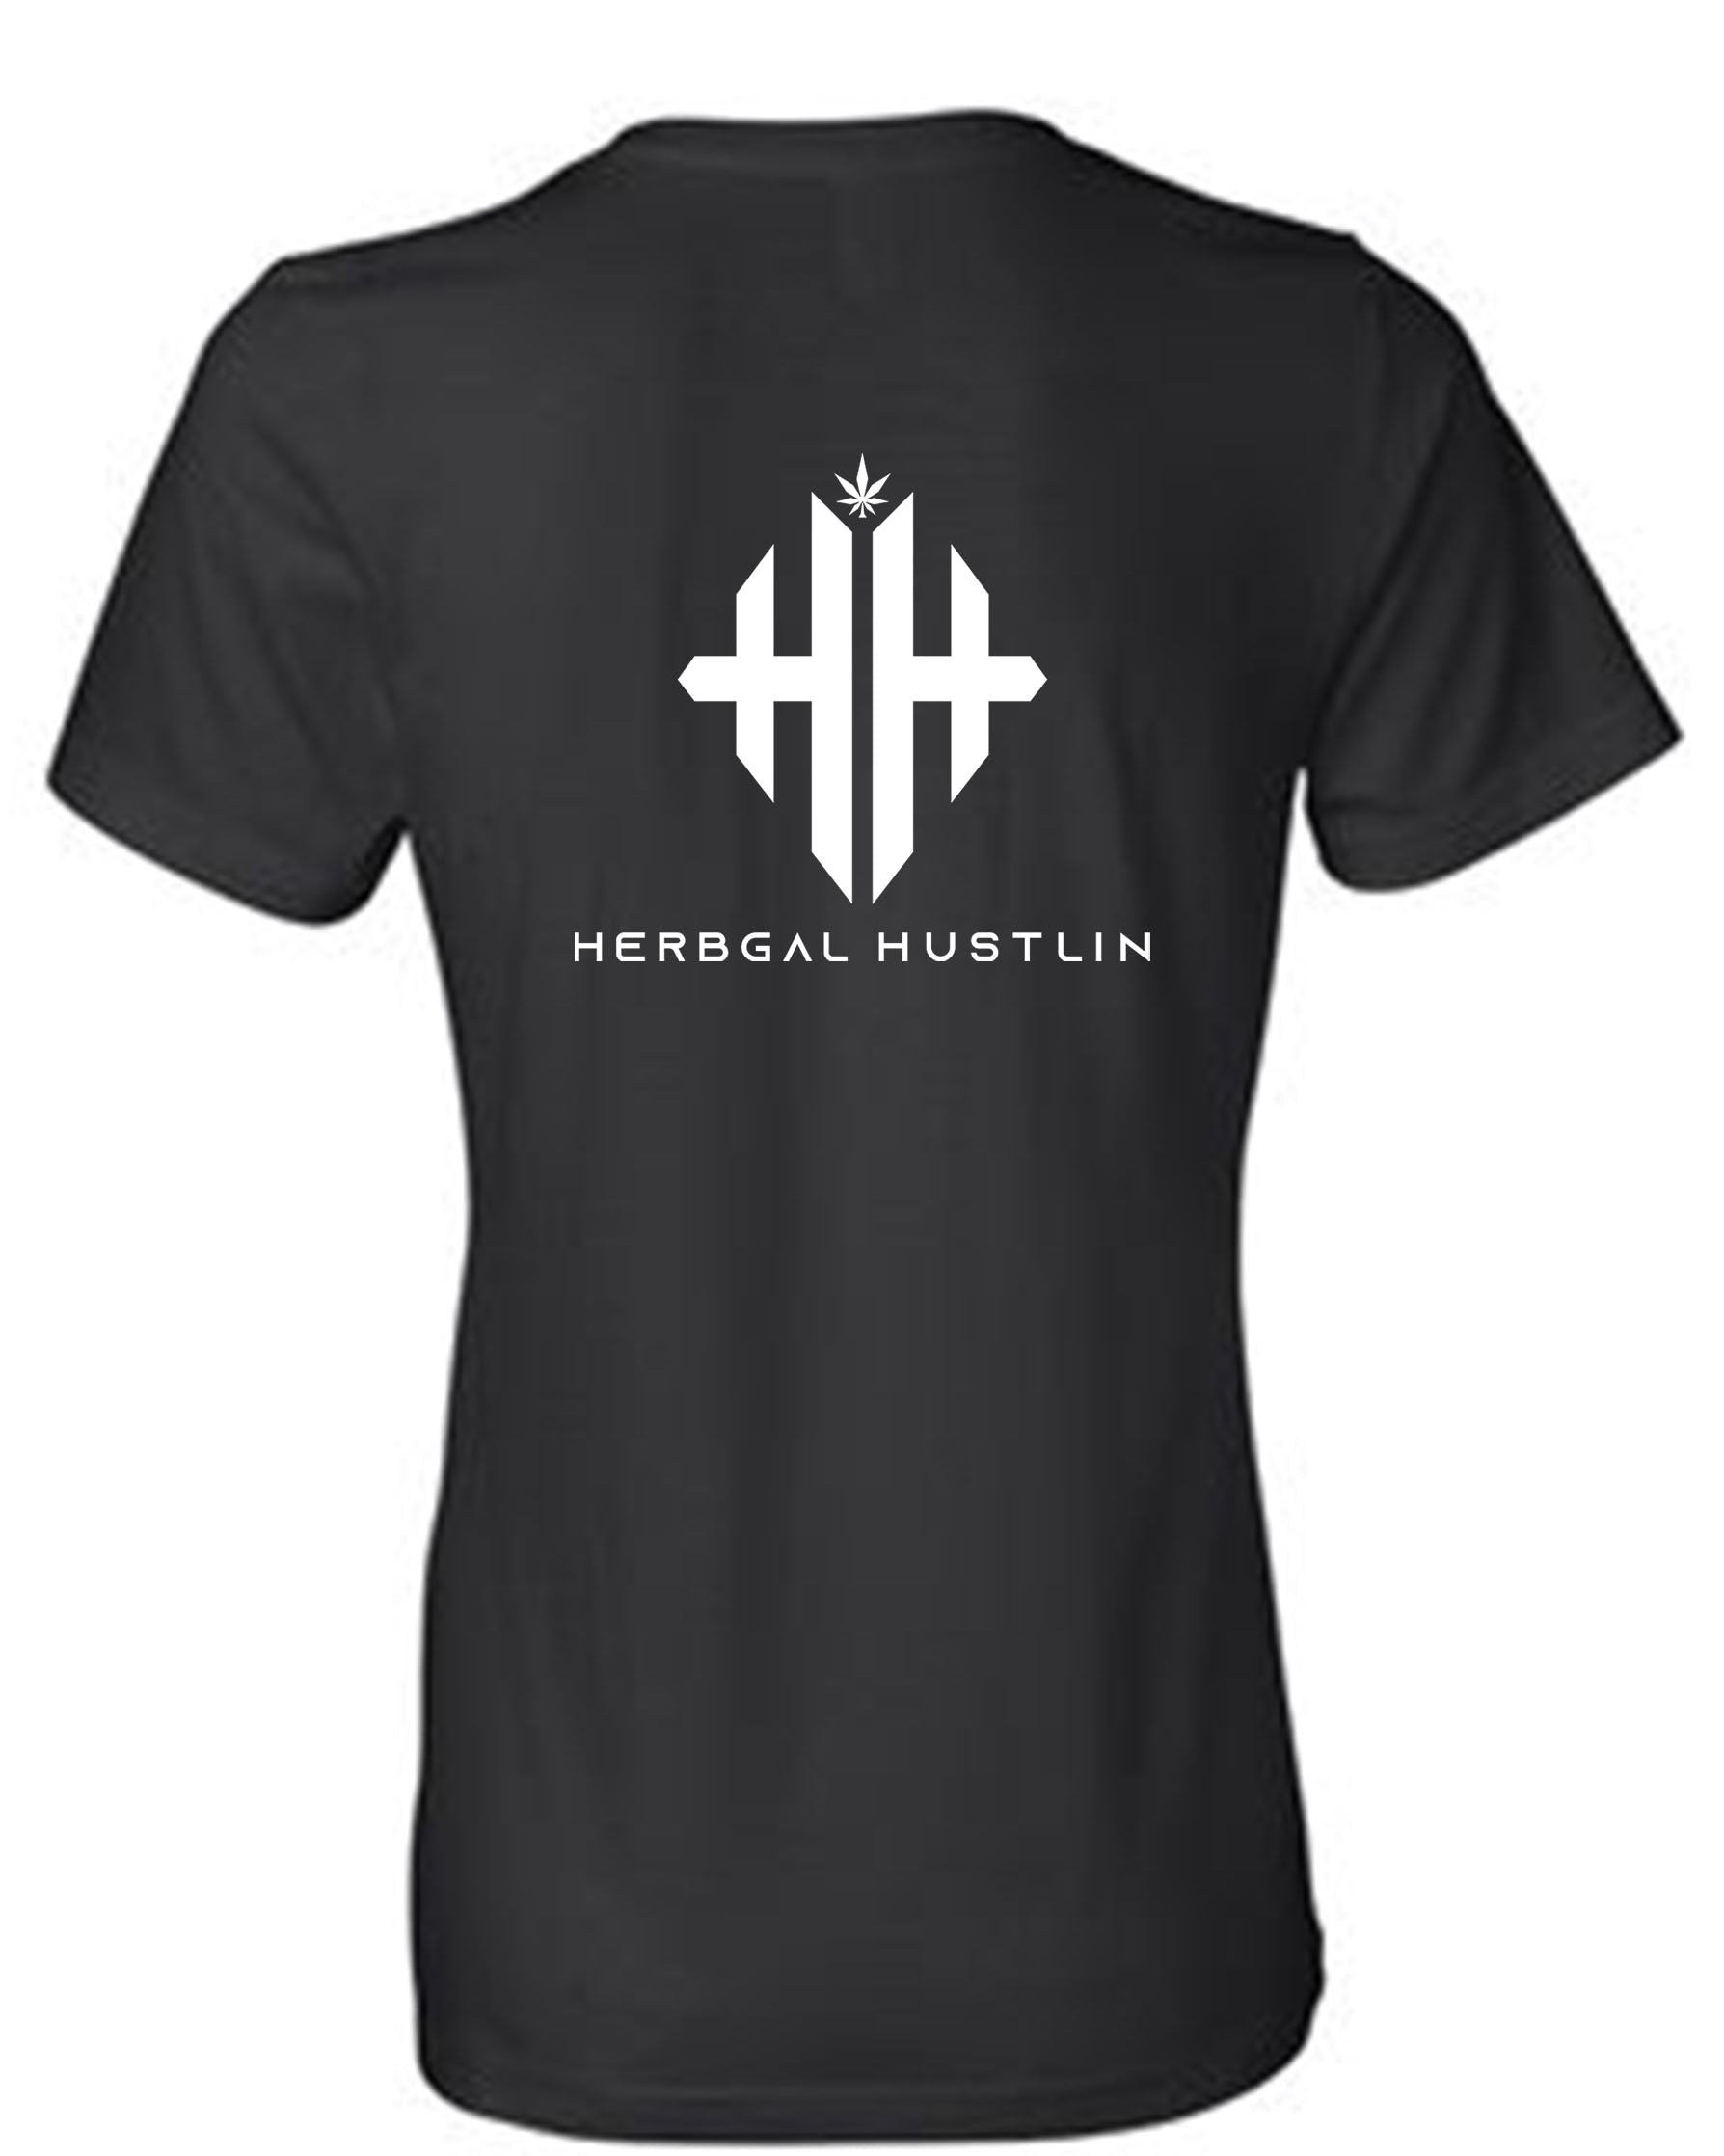 Herbgal Hustlin Monogram Slouch Tee - Black/White - Front